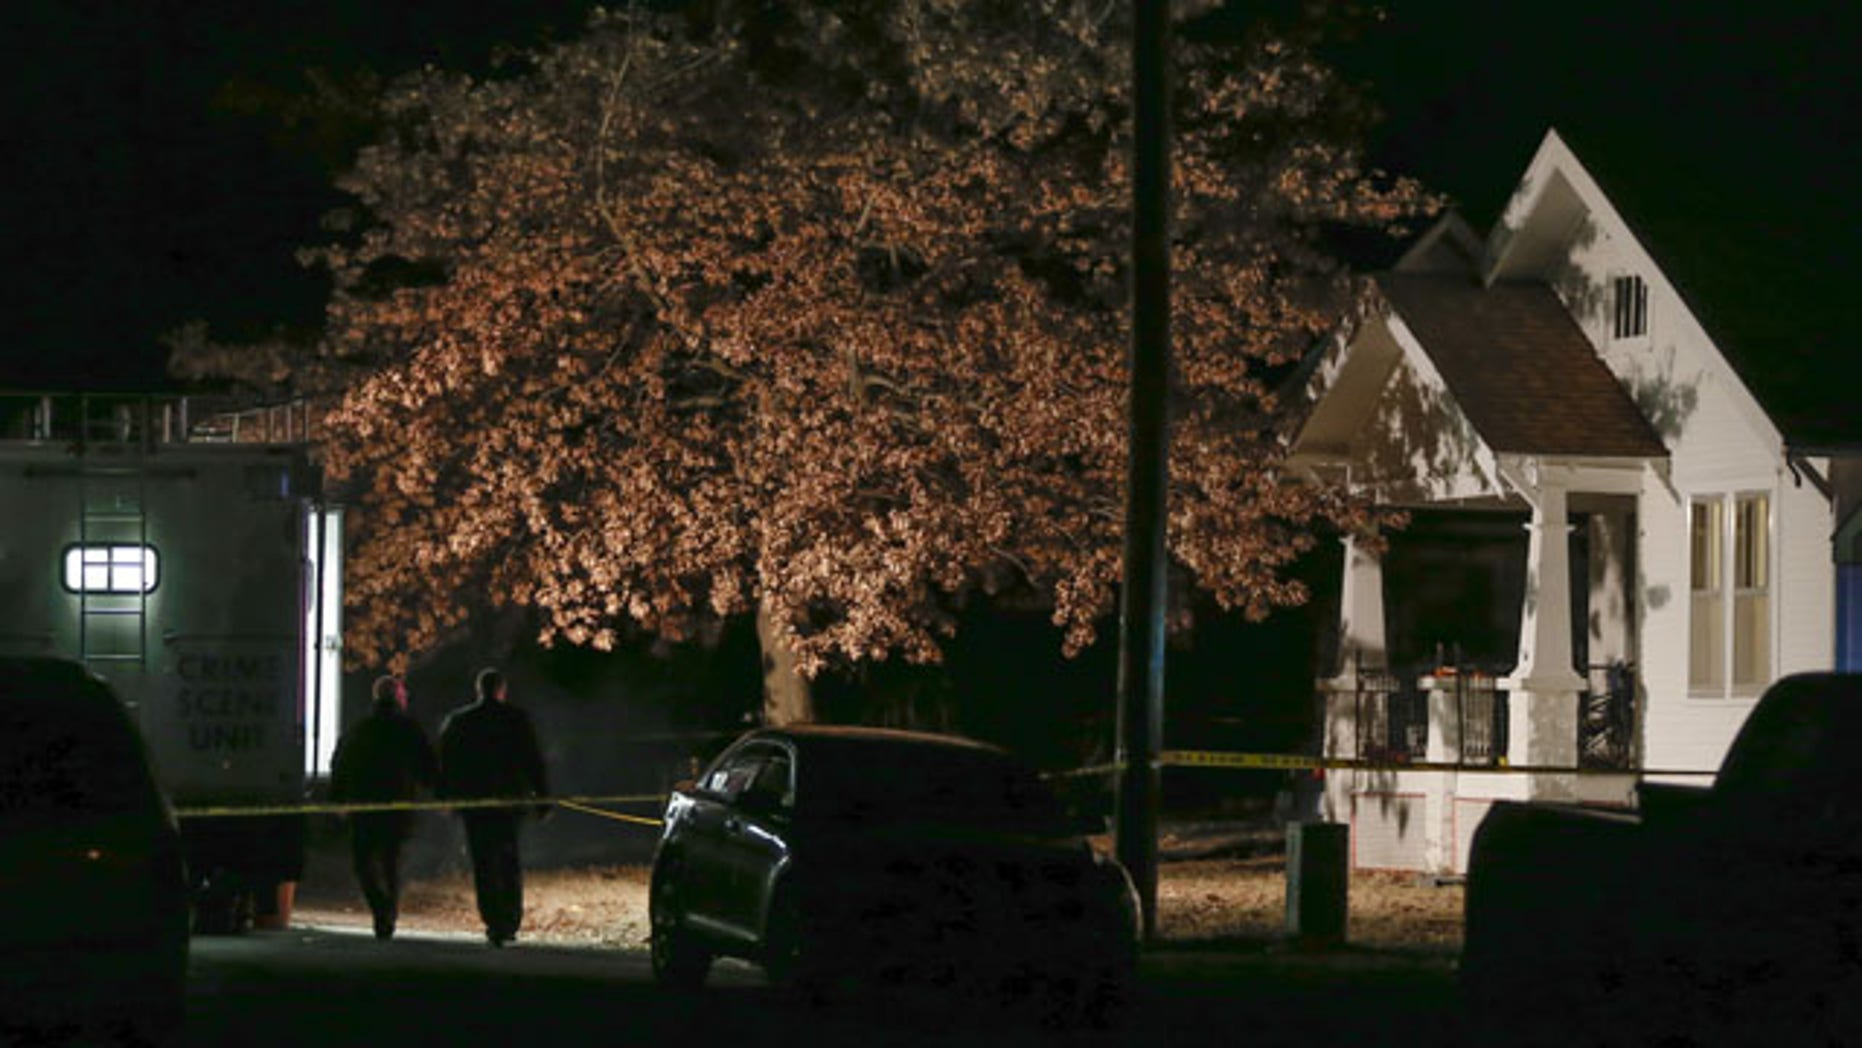 November 27, 2013: An active crime scene investigation is still underway in Parsons, Kan., where Cami Umbarger and her three young children – Hollie, Jaxon and Averie -- were found murdered in their home on Monday. (AP Photo/Wichita Eagle)